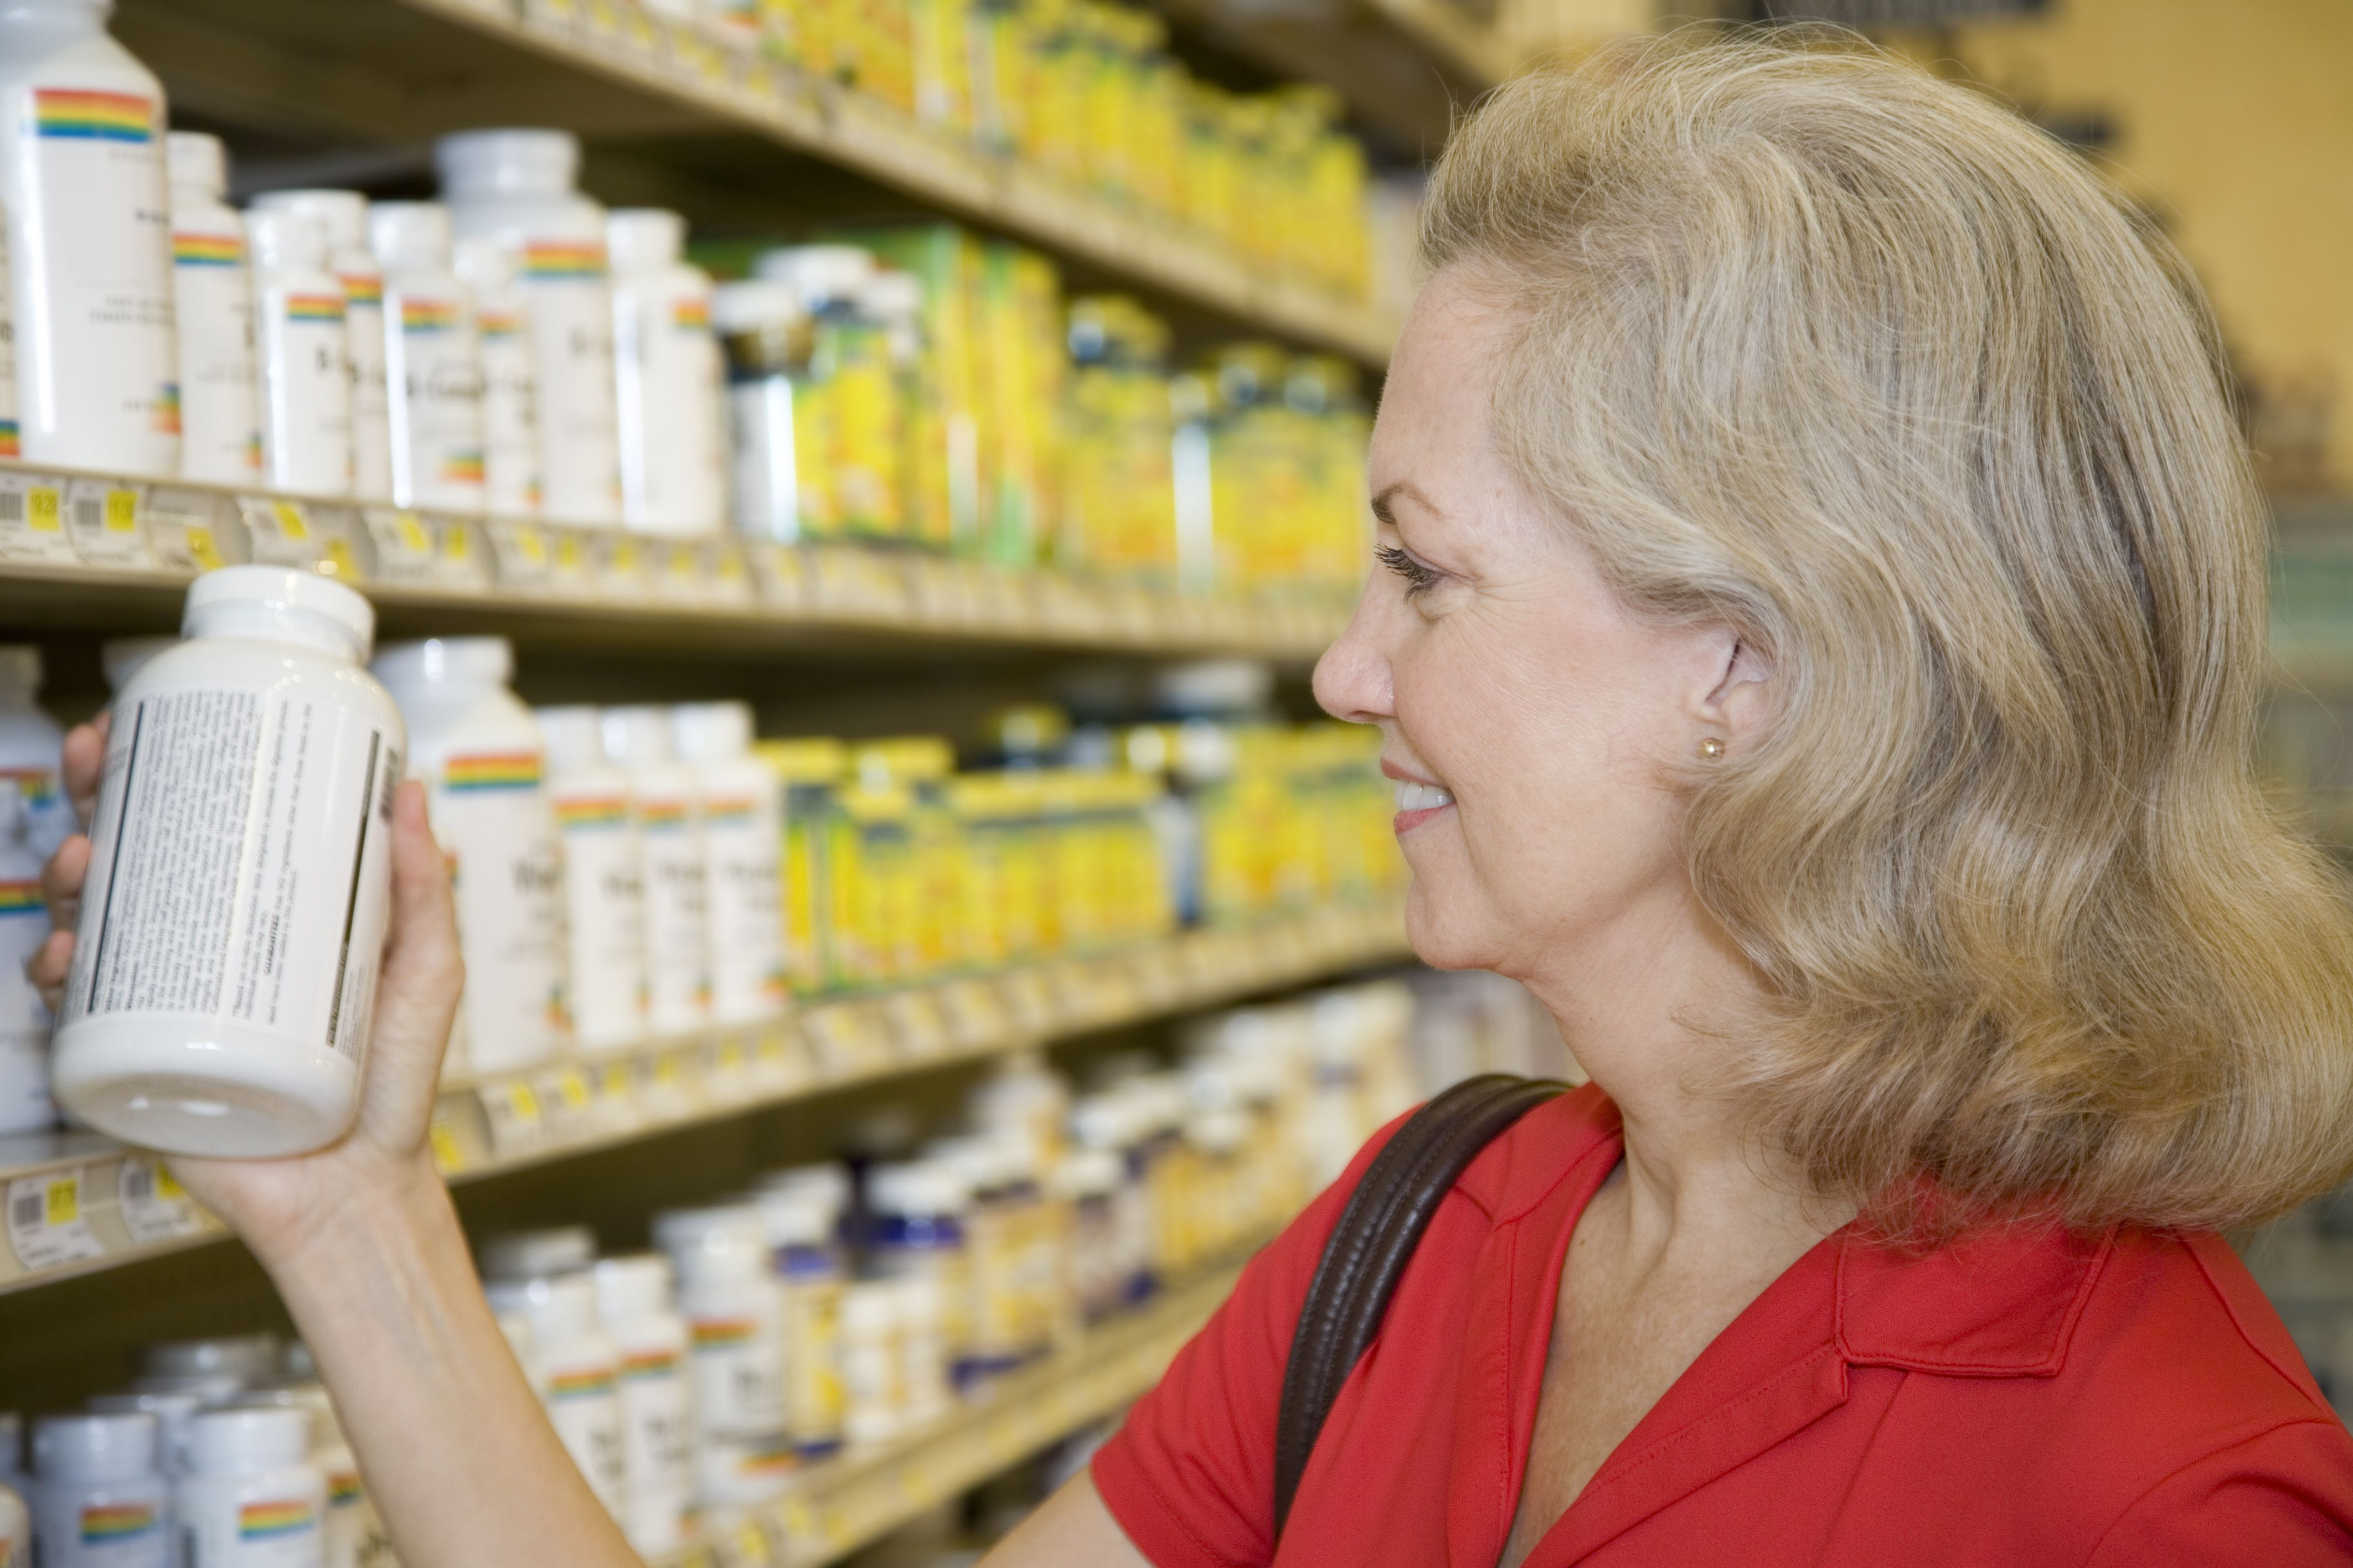 The 7 Best Multivitamins for Women of 2019